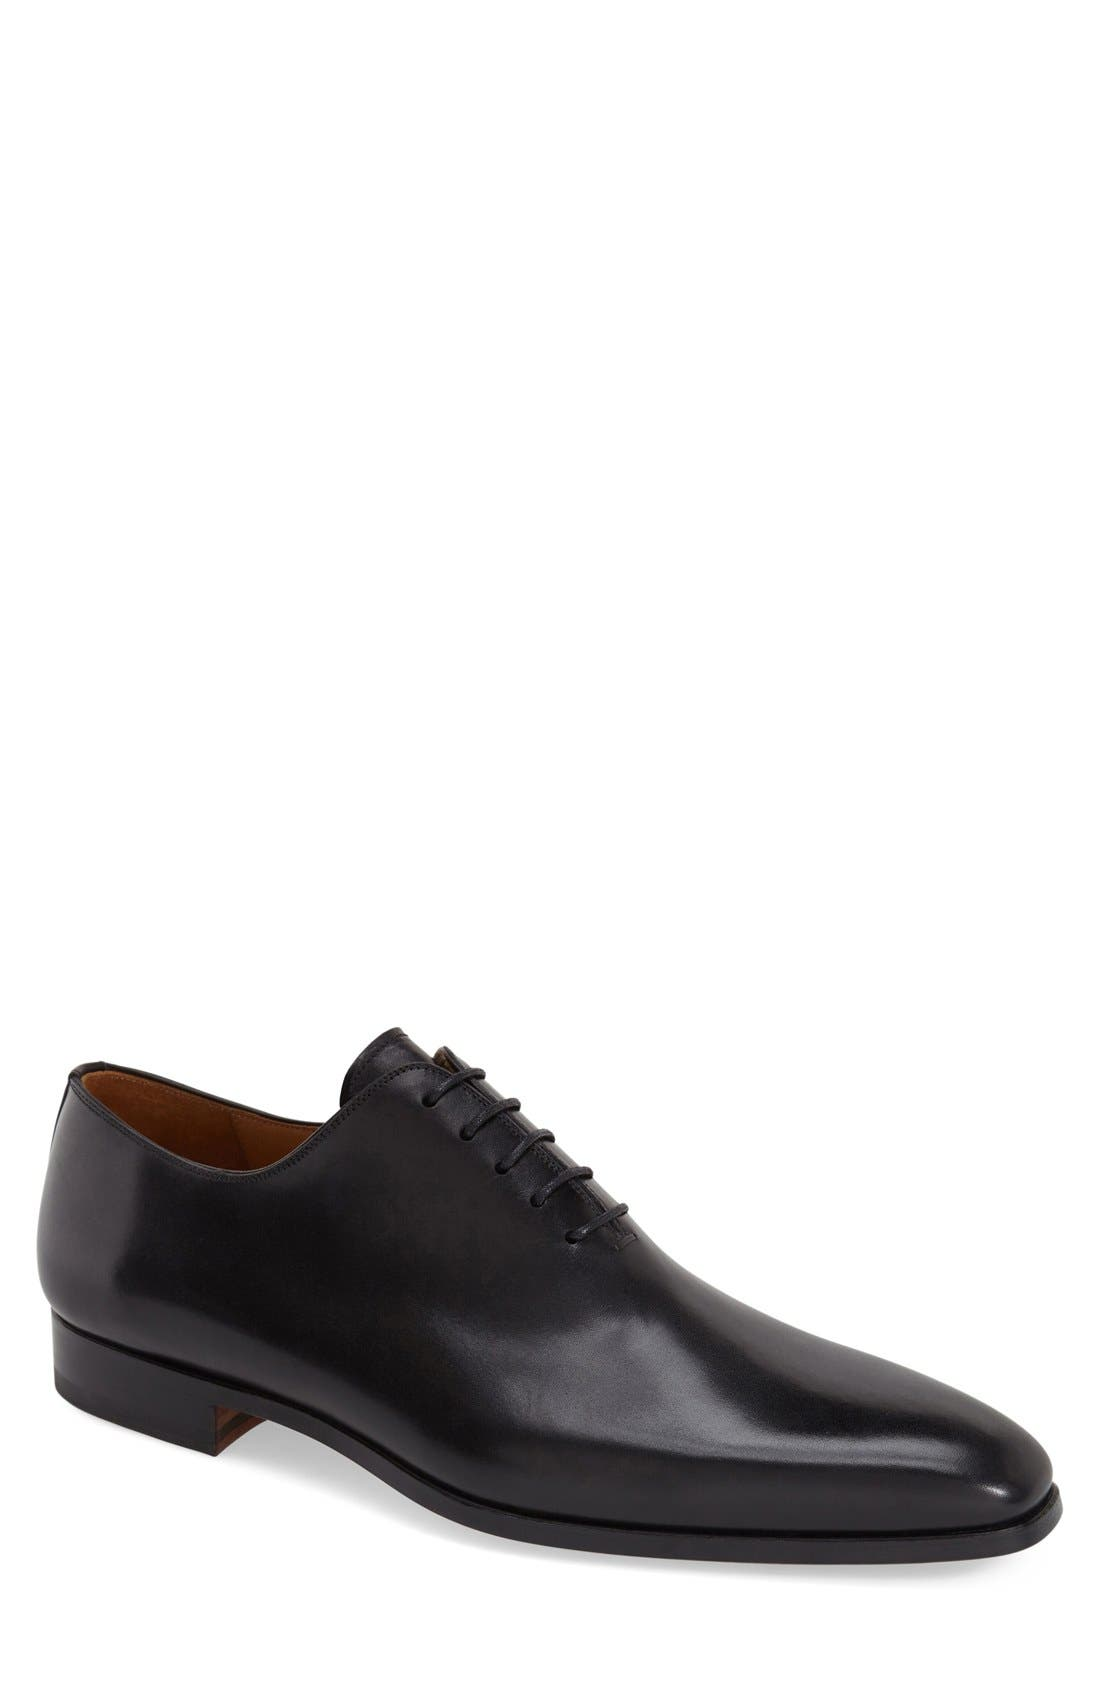 Magnanni 'Cruz' Plain Toe Oxford (Men)